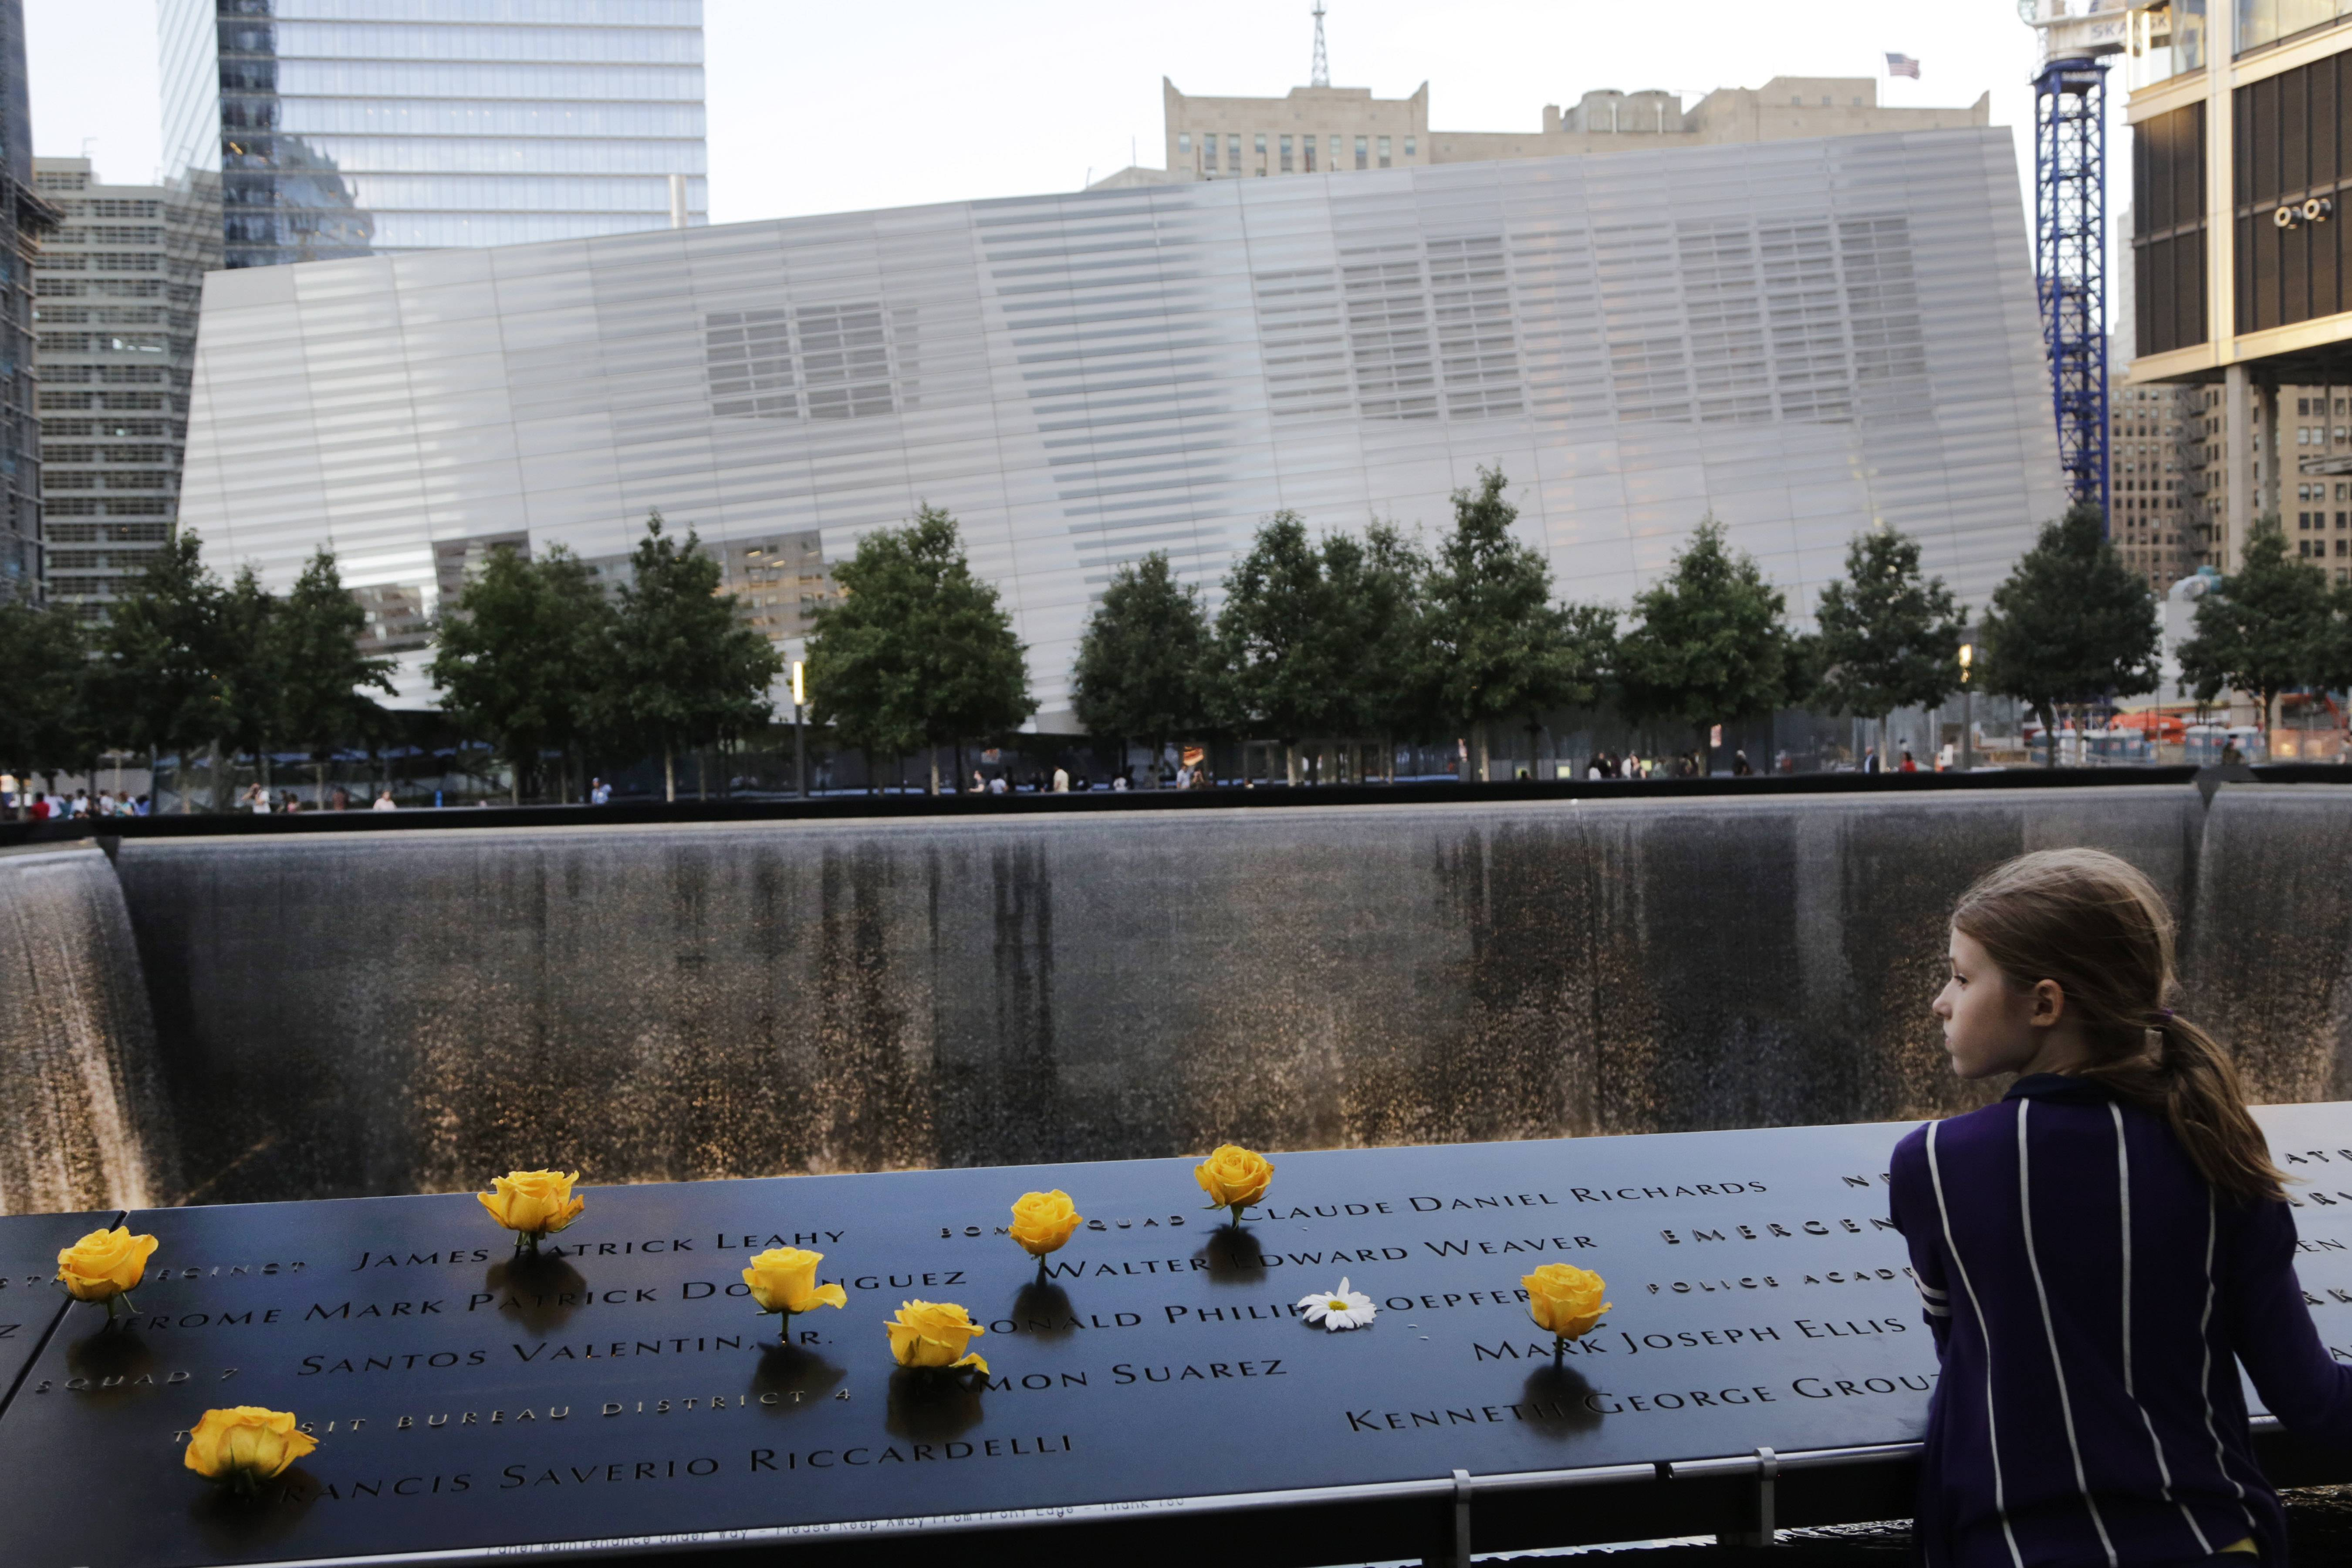 Charlotte Newman, 8, visits the National September 11 Memorial and Museum last year. The long-awaited museum, in the background, will open to the public on May 21.